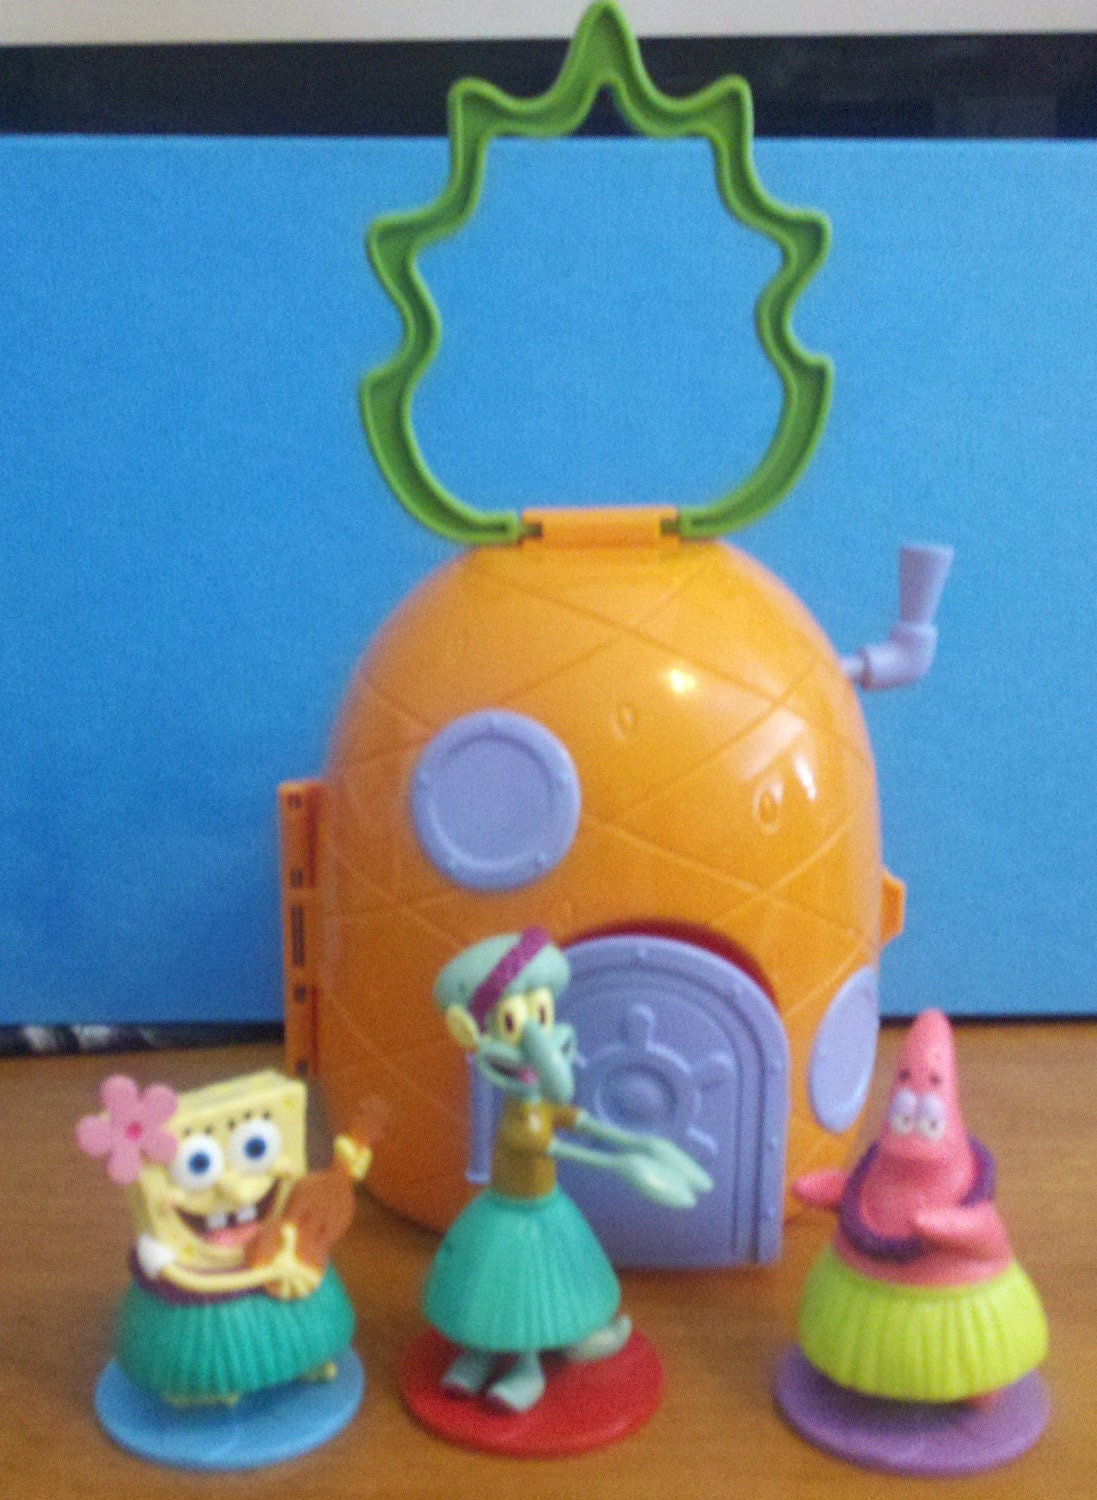 spongebob cake decorations meknun com